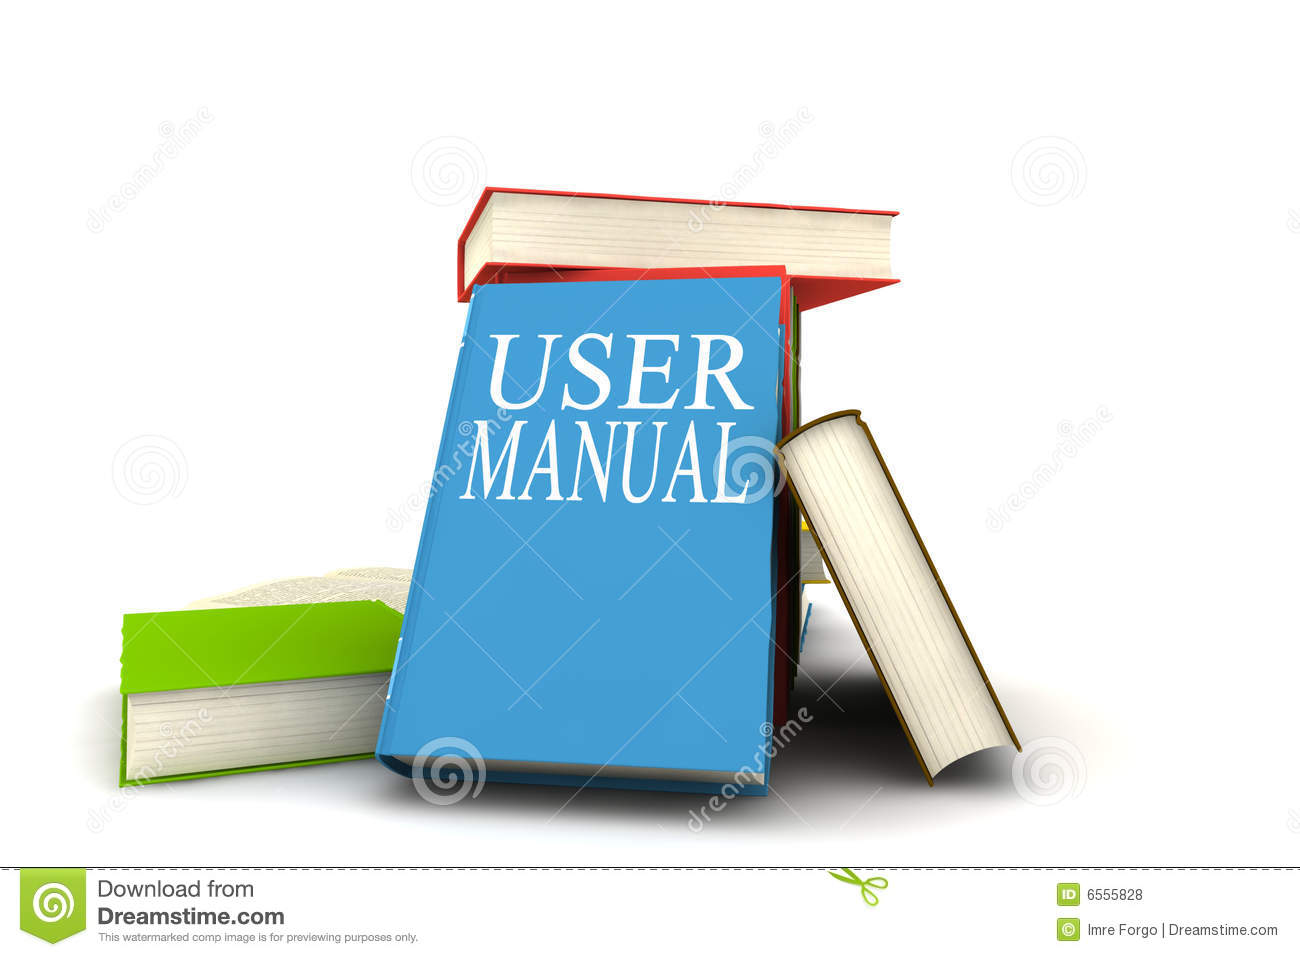 user manual books royalty free stock photos   image 6555828